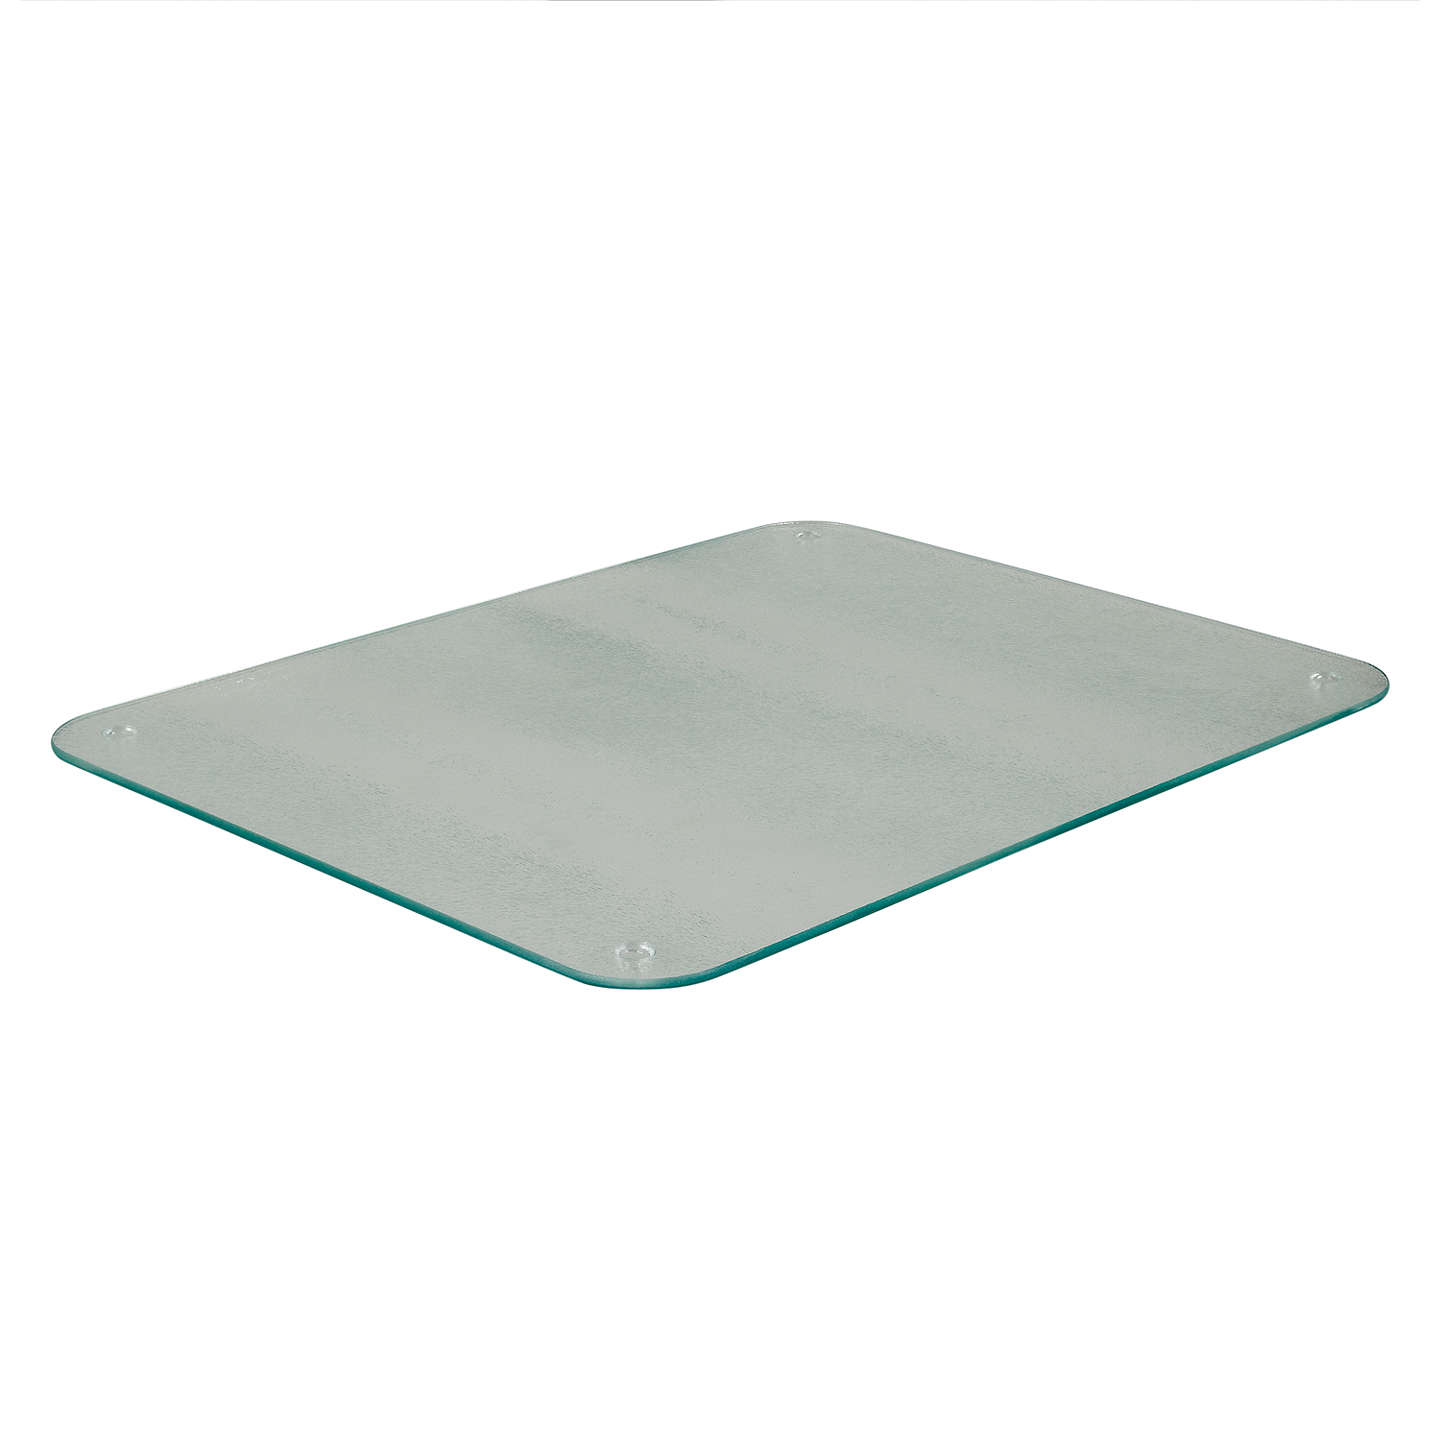 joseph joseph frosted glass worktop saver at john lewis. Black Bedroom Furniture Sets. Home Design Ideas